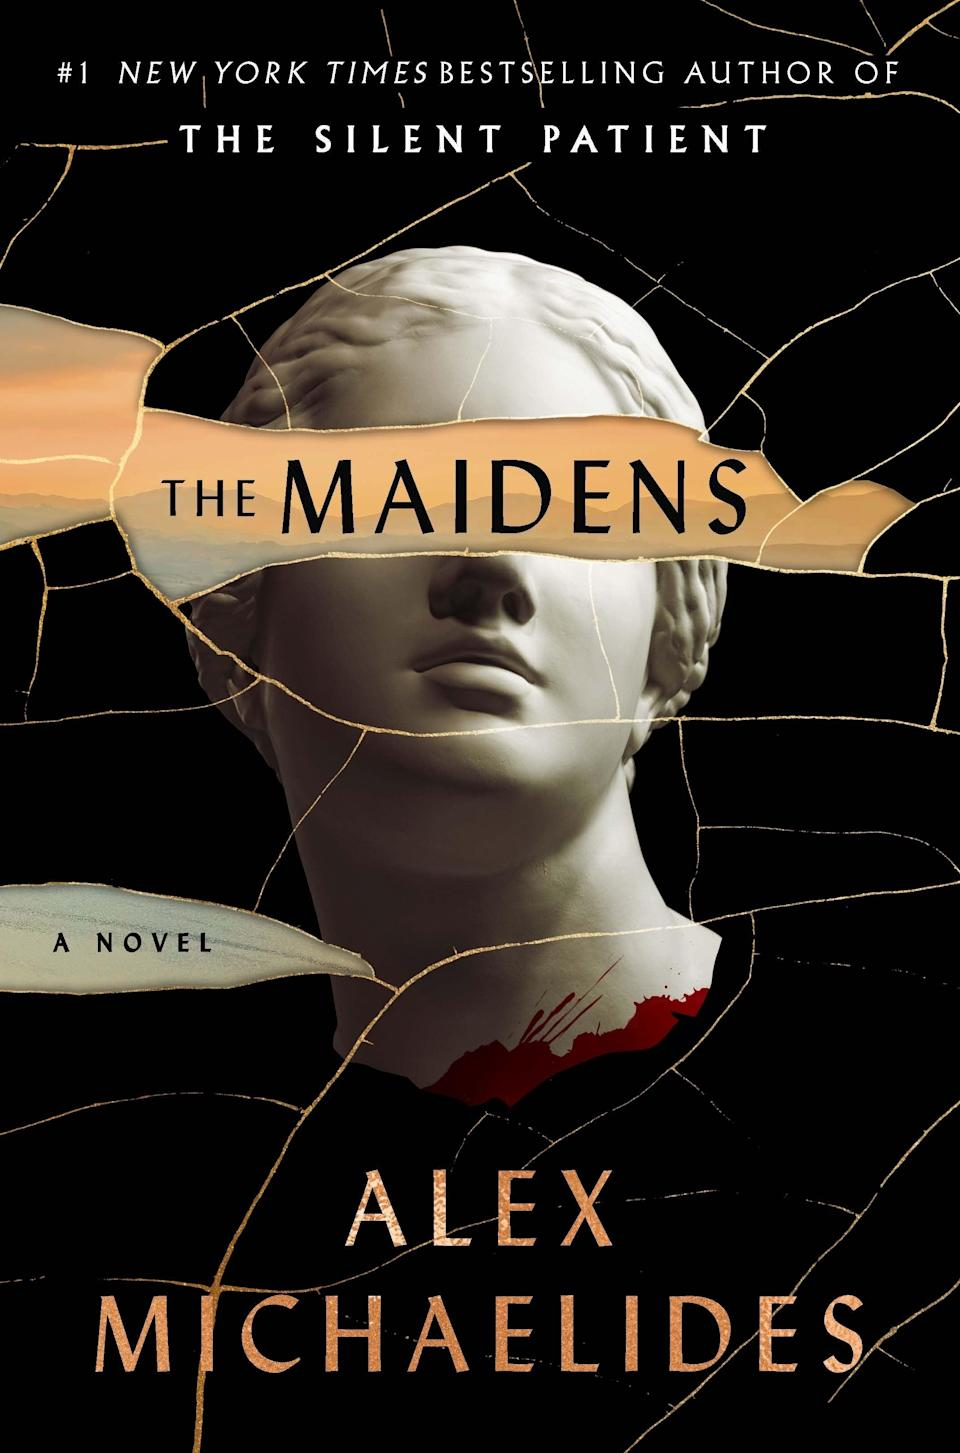 """For lovers of Greek mythology, <em>The Maidens </em>stands as a tale of modern murders with an ancient classic twist. Following ex-Cambridge University student Mariana on her quest to find a killer, she soon becomes suspicious of a charming Greek tragedy professor named Edward Fosca. Adored by a secret society of female students (aka 'The Maidens'), Mariana is convinced that the professor must be responsible for the death of a young member. Though he has a reliable alibi, his strange interest in the tale of Persephone and her journey to the underworld makes him seem the most obvious suspect. With Mariana's career as a therapist hanging in the balance, pursuing the case could ruin the life she worked so hard to build.<br><br><strong>Alex Michaelides</strong> The Maidens, $, available at <a href=""""https://uk.bookshop.org/books/the-maidens-the-new-thriller-from-the-author-of-the-global-bestselling-debut-the-silent-patient/9781409181668"""" rel=""""nofollow noopener"""" target=""""_blank"""" data-ylk=""""slk:bookshop.org"""" class=""""link rapid-noclick-resp"""">bookshop.org</a>"""